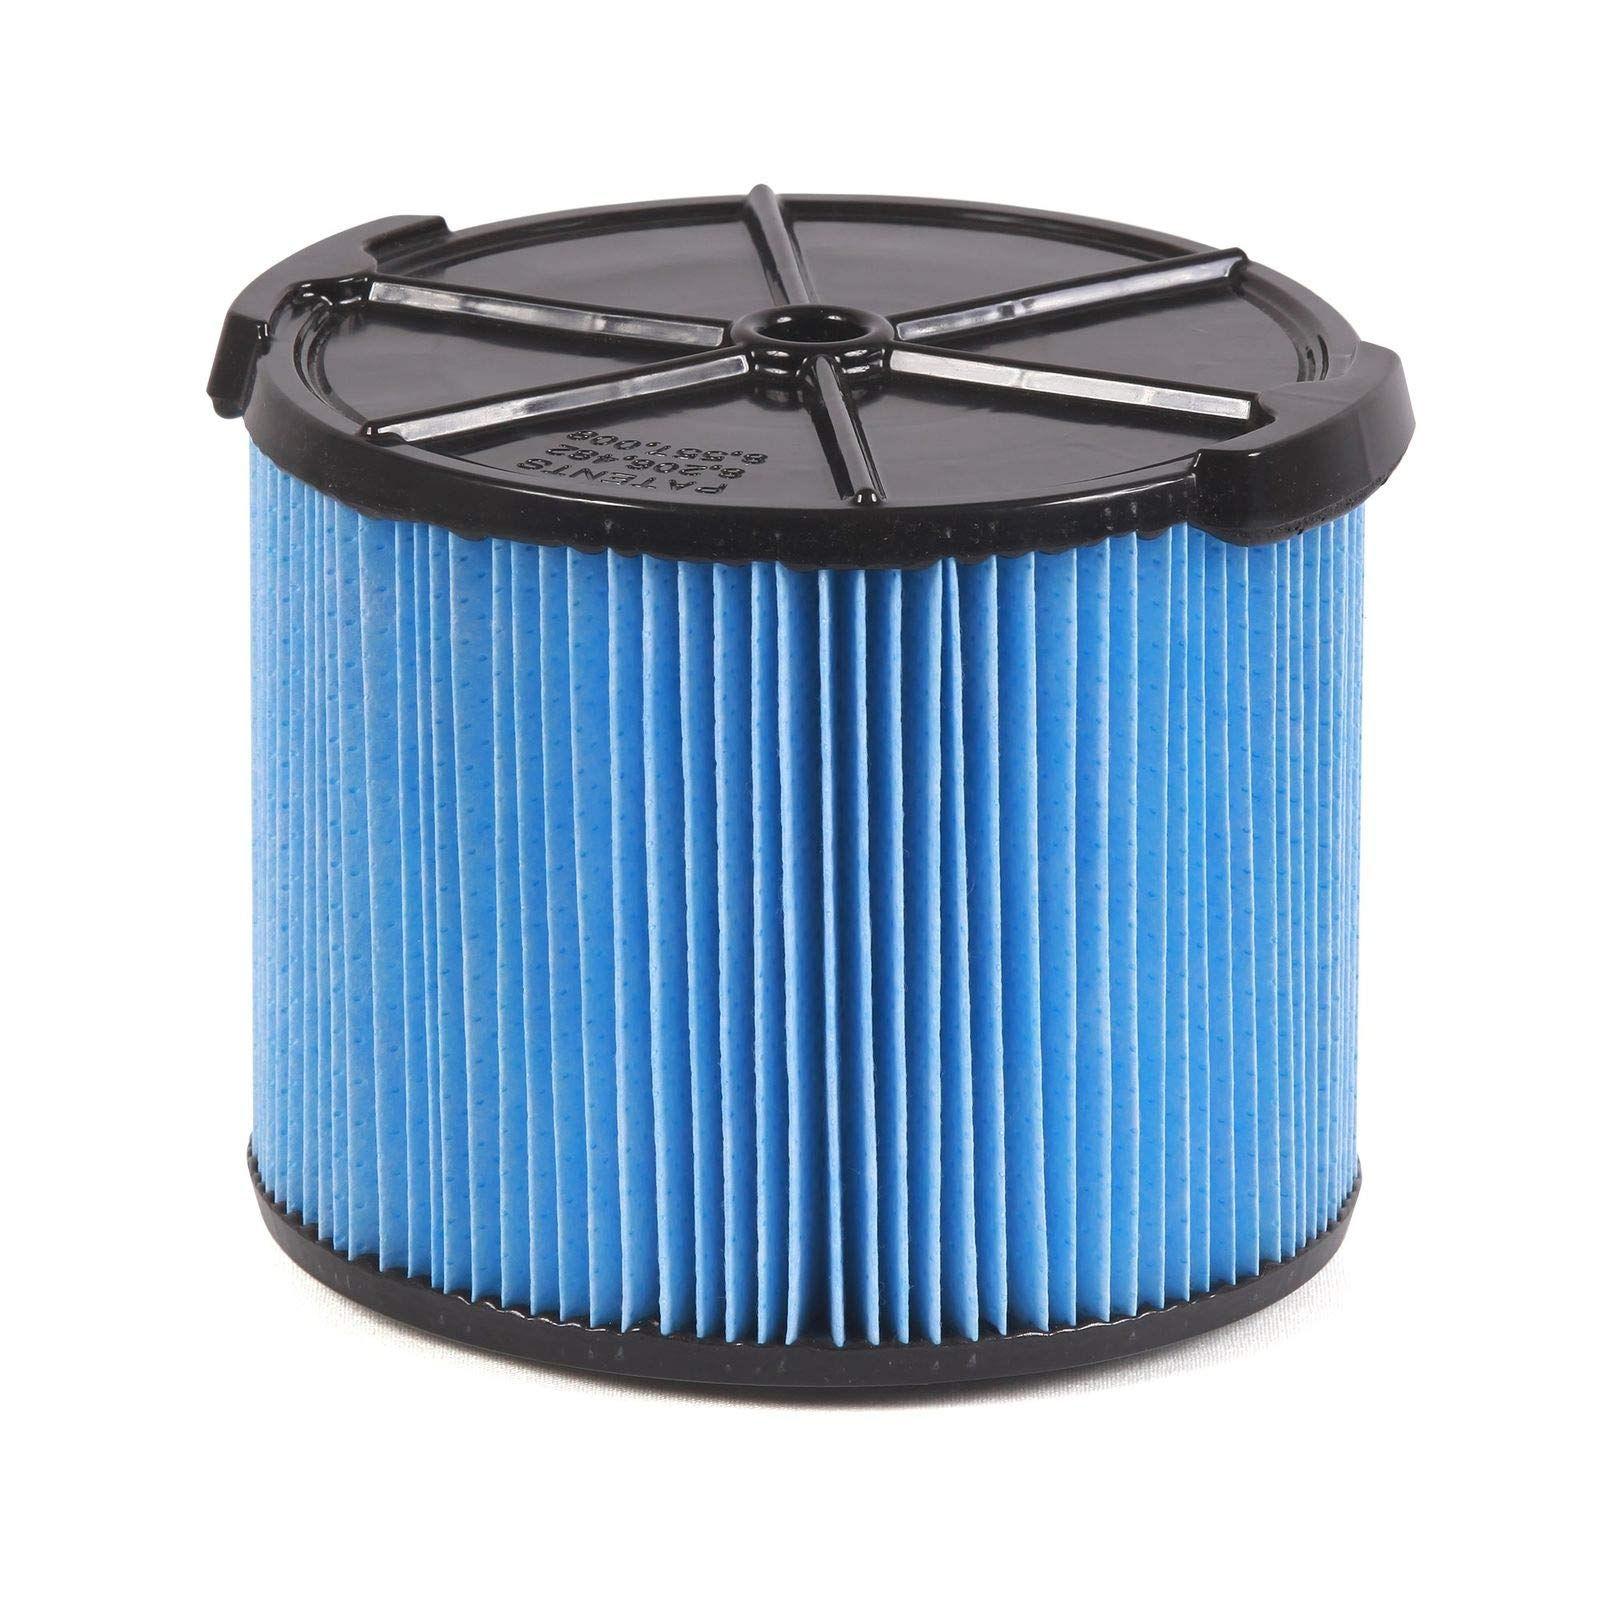 Ximoon filter replace RIDGID VF3500 3-Layer Wet/Dry Vacuum Dust Filter for RIDGID WD4050 3 to 4.5 Gallon Vacuums